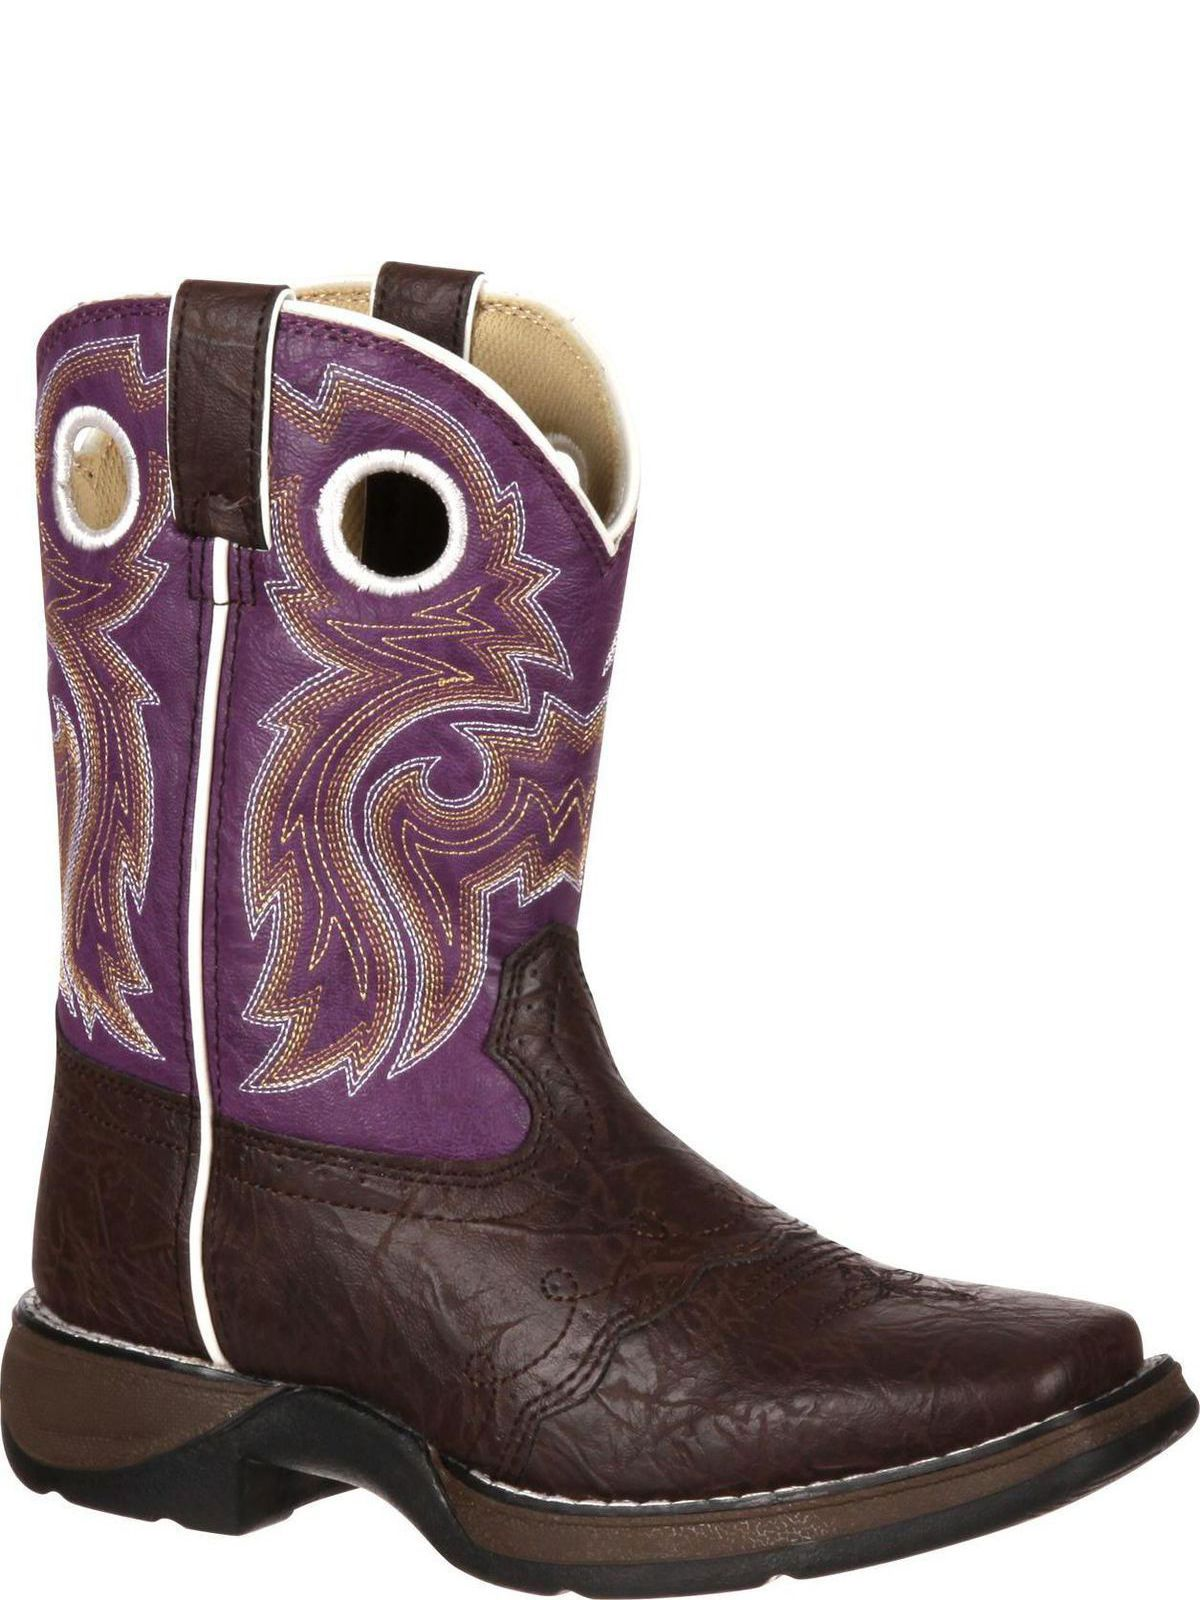 Lil Durango Youth Camo Saddle Western Boot DBT0121